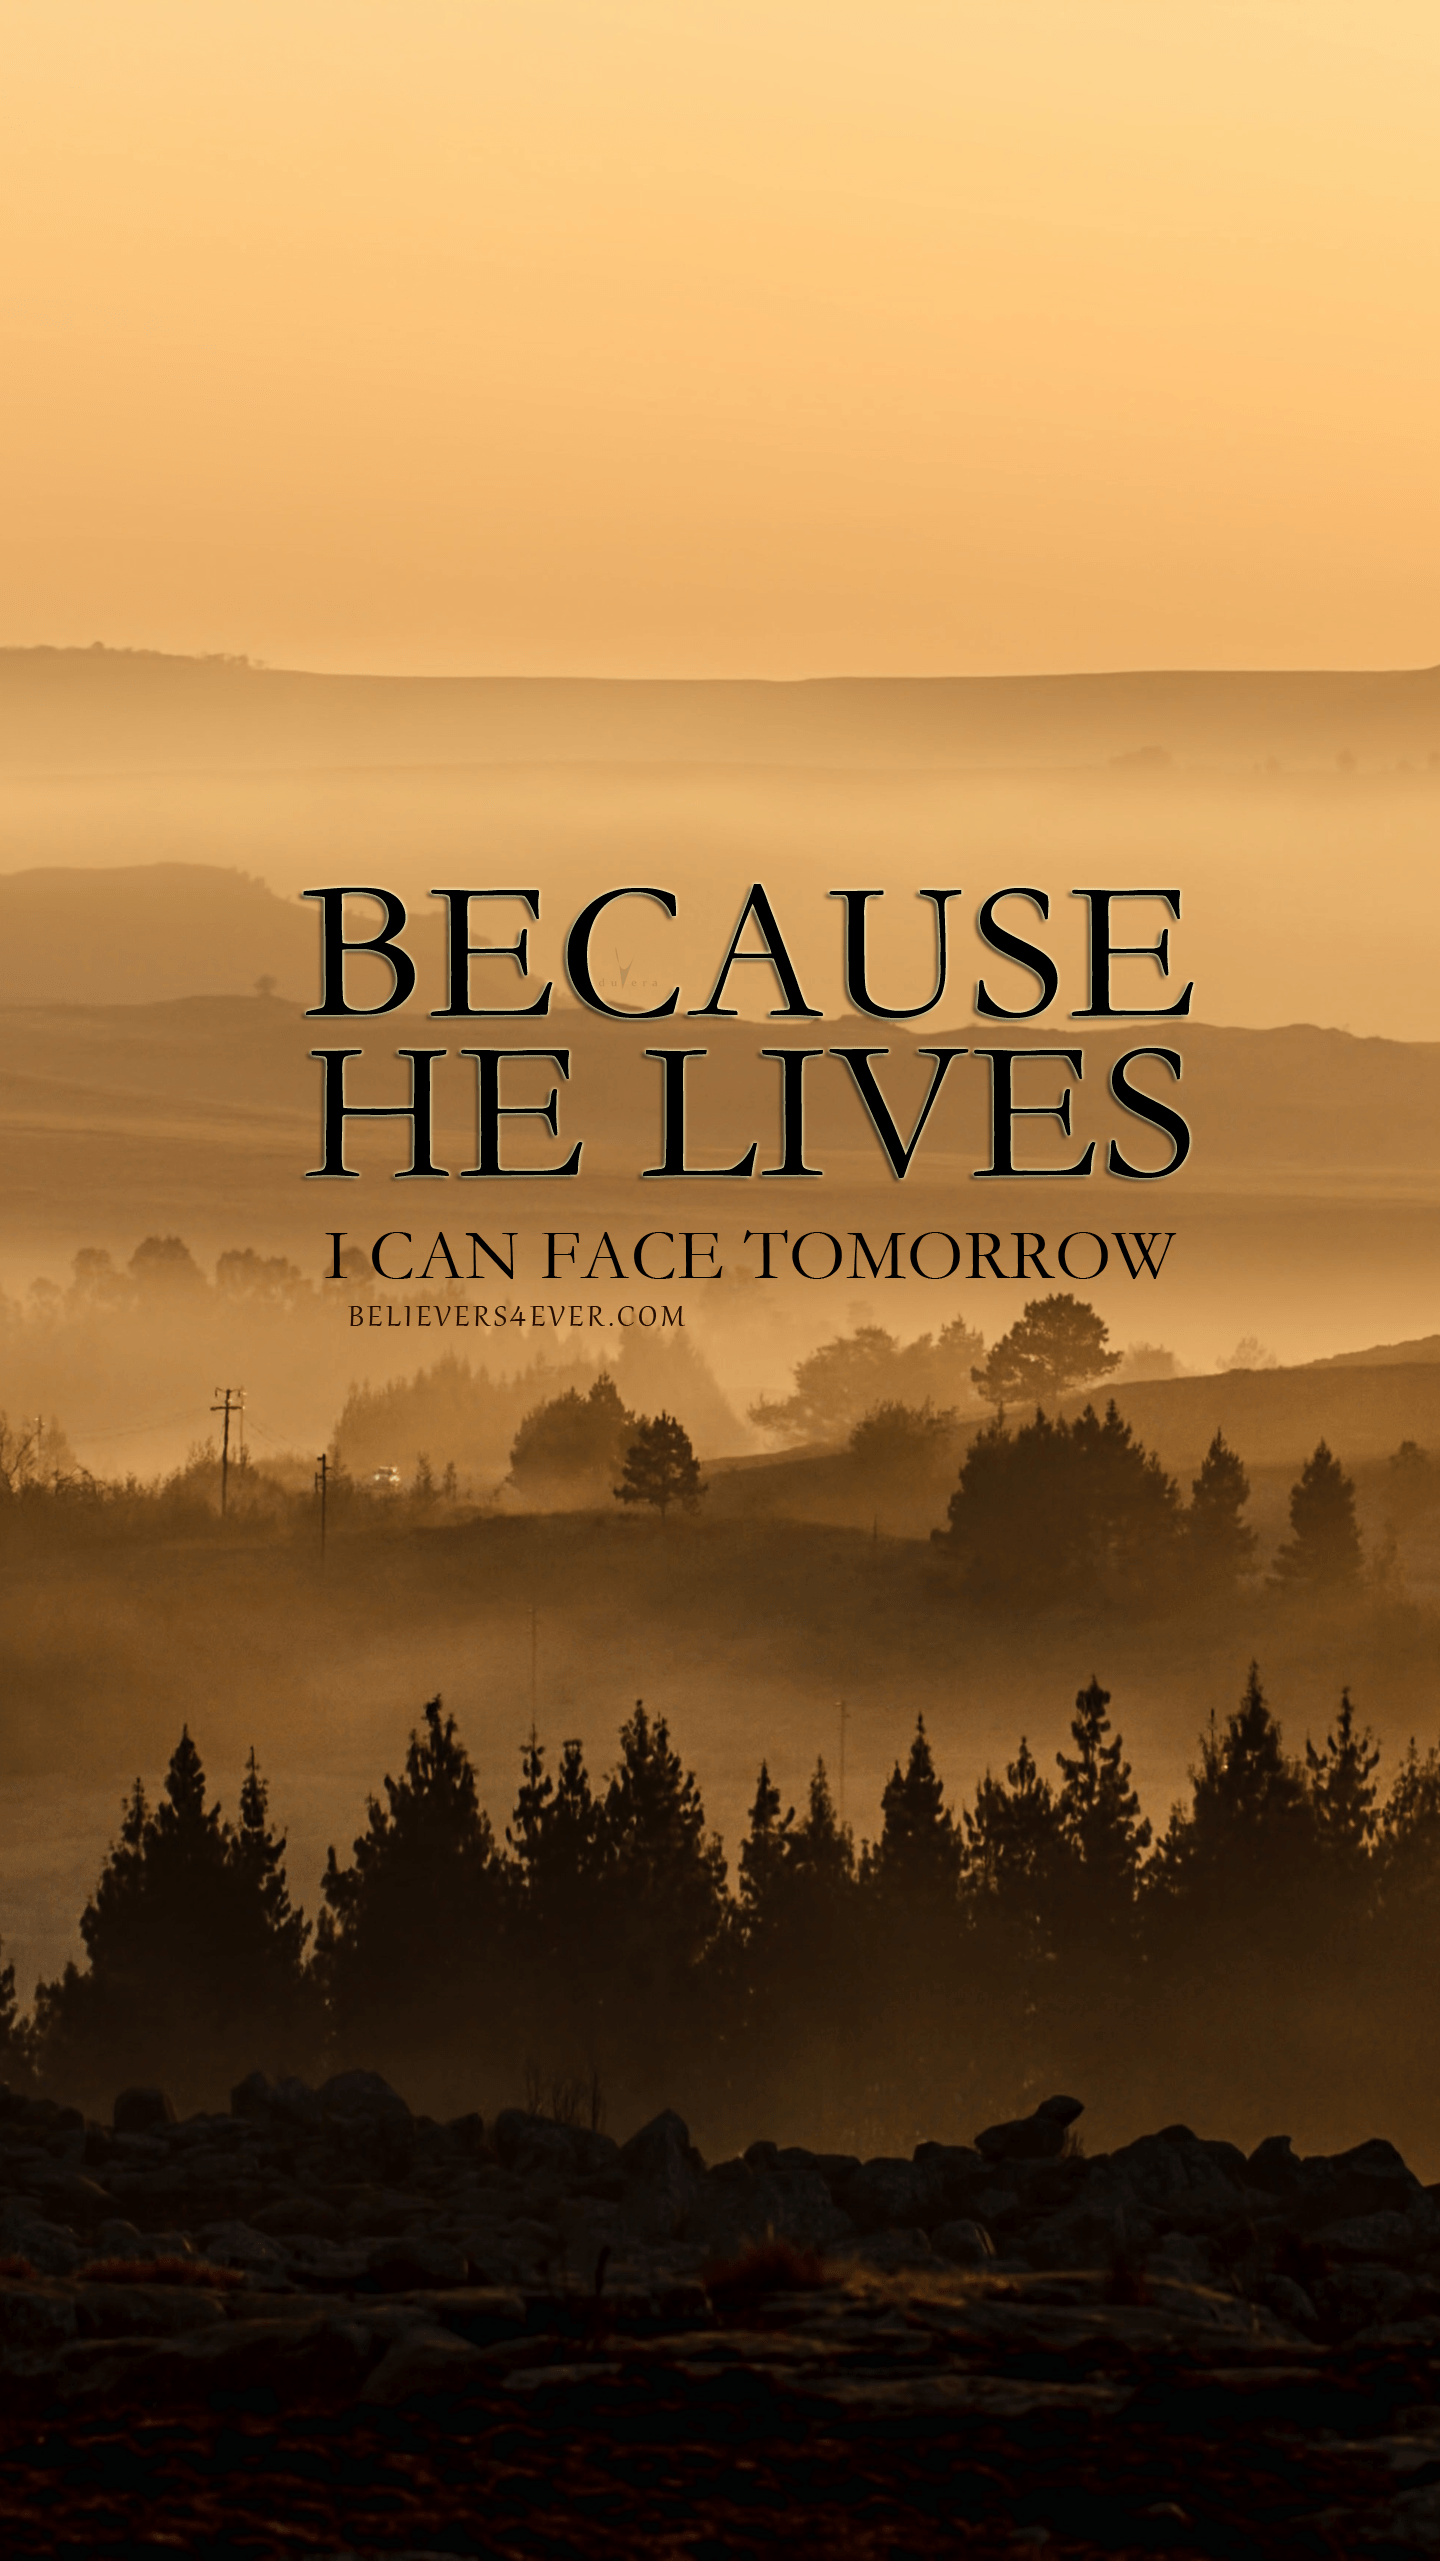 Because He Lives Lock Screen Wallpaper Bible And Verses